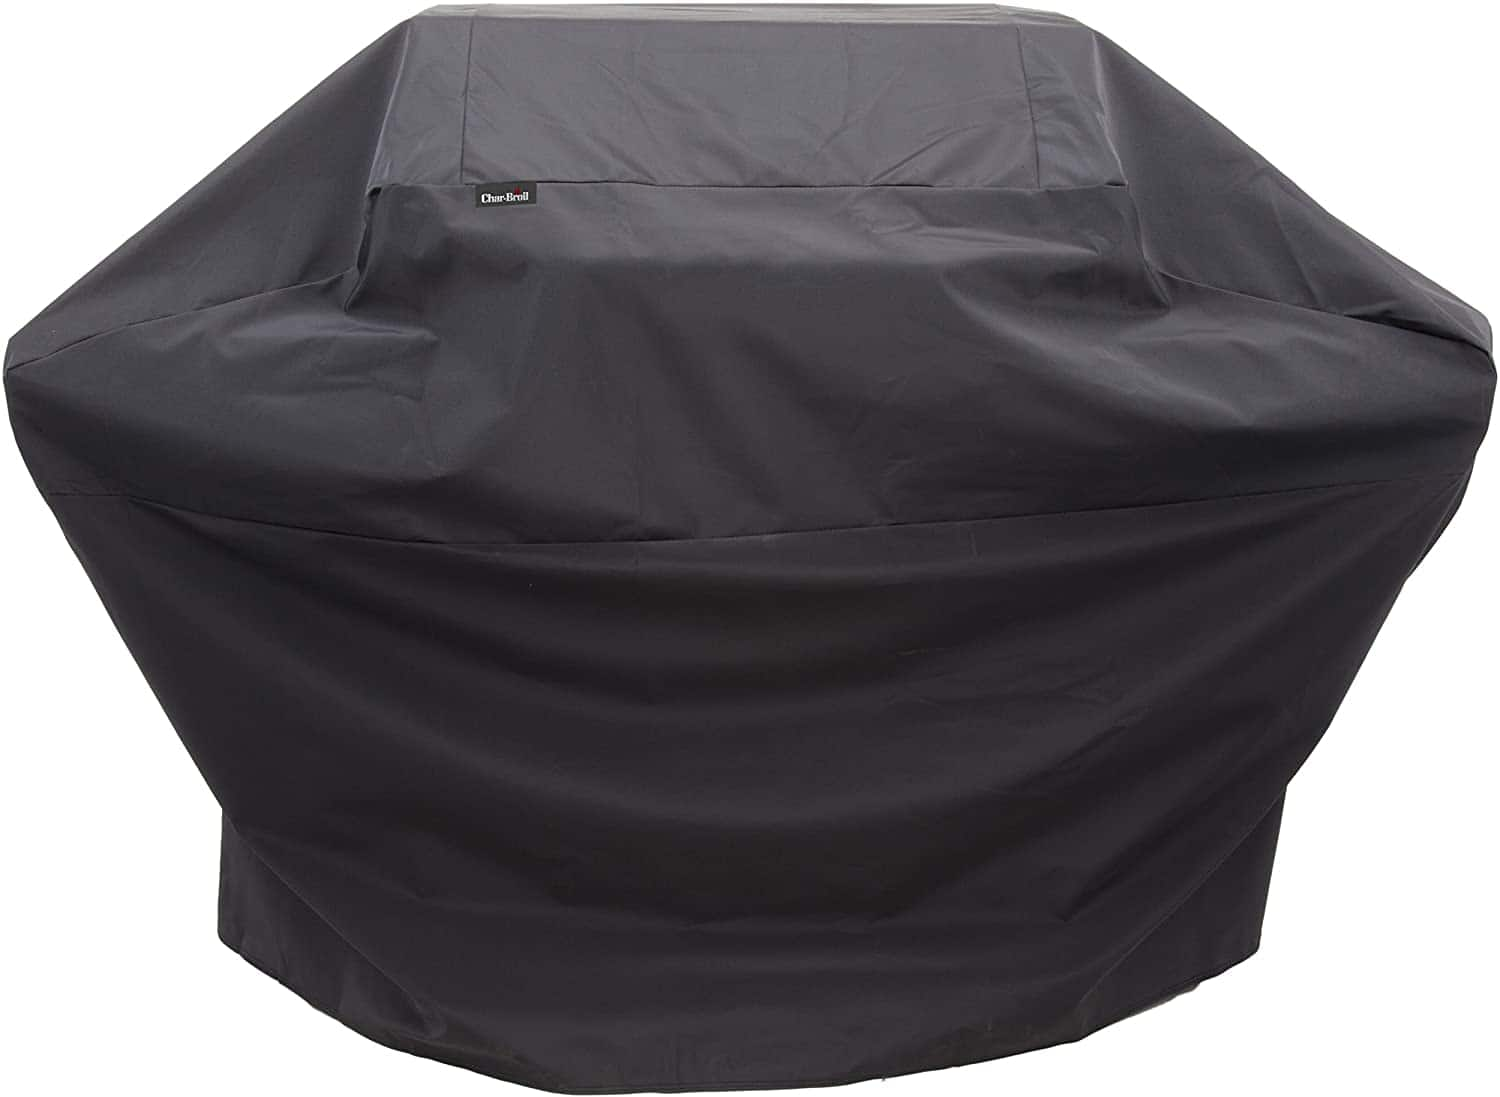 Char Broil Performance Grill Cover, 5+ Burner: Extra Large - $15.99 @ Amazon + FS with Prime